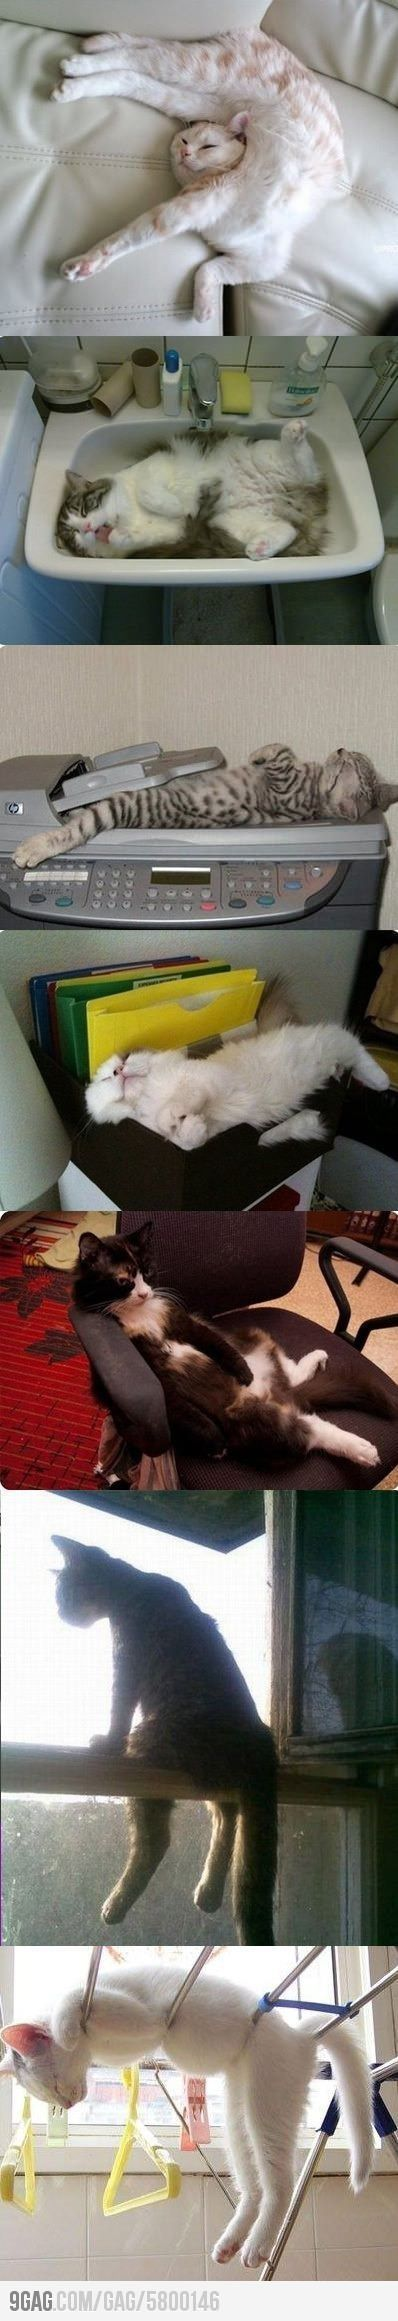 Cats...if only i could sleep like that!